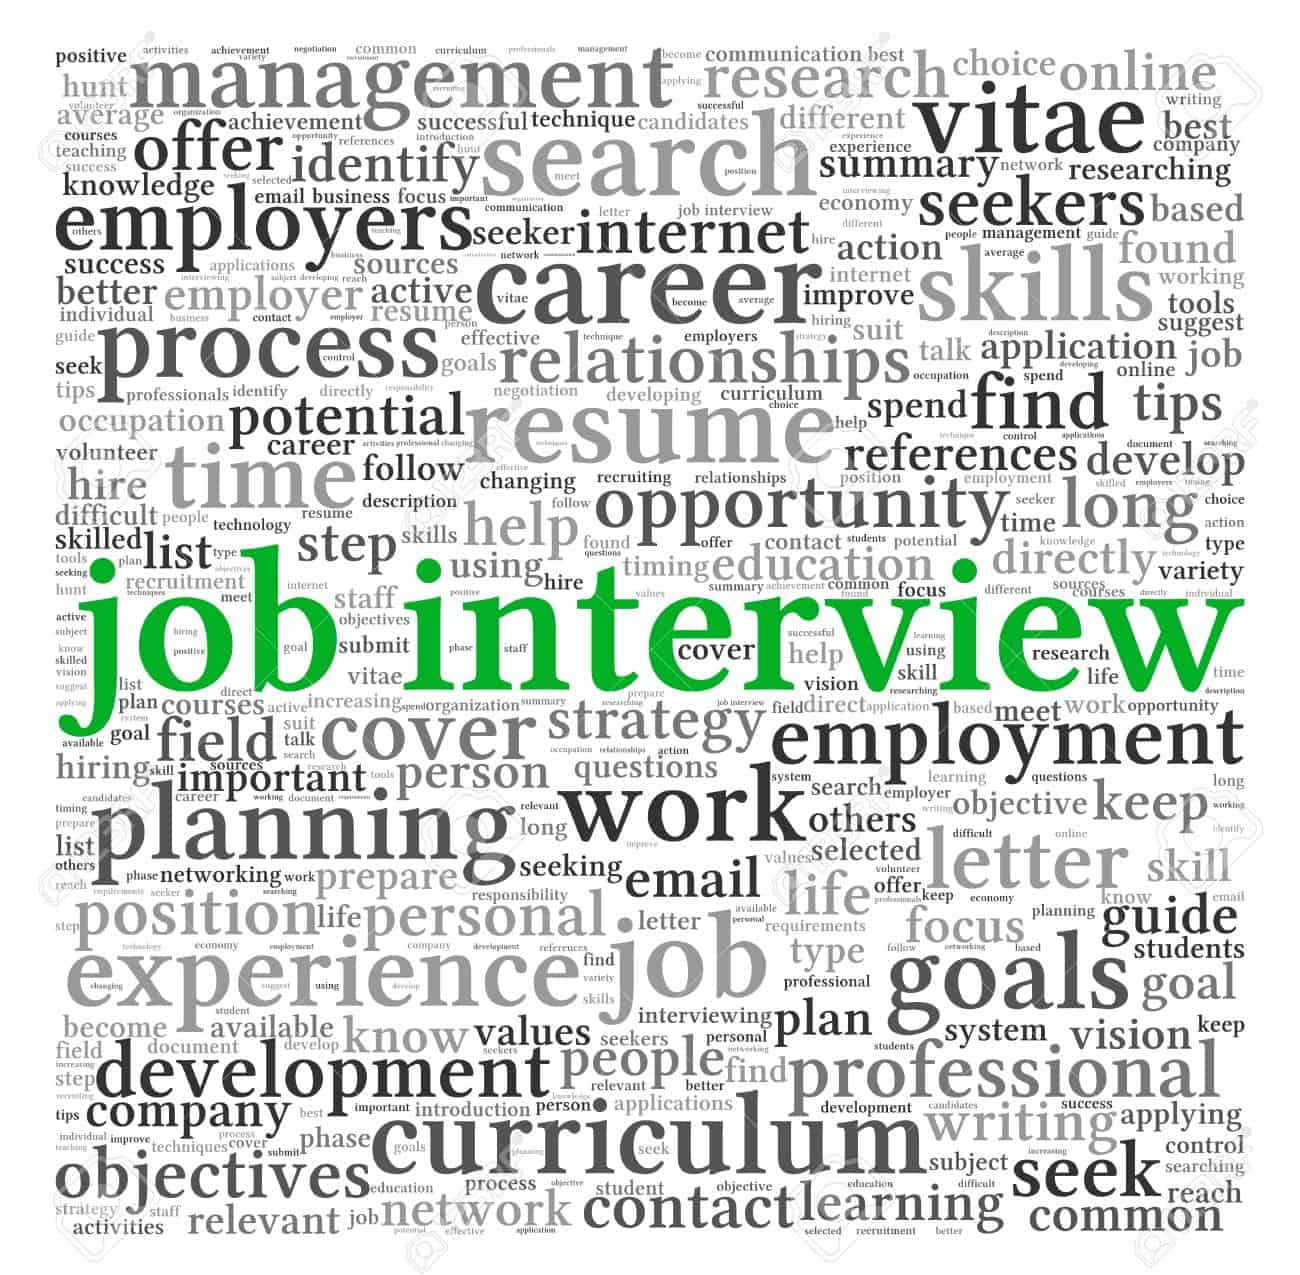 job interview 4 Tips to Improve Your Interview Skills